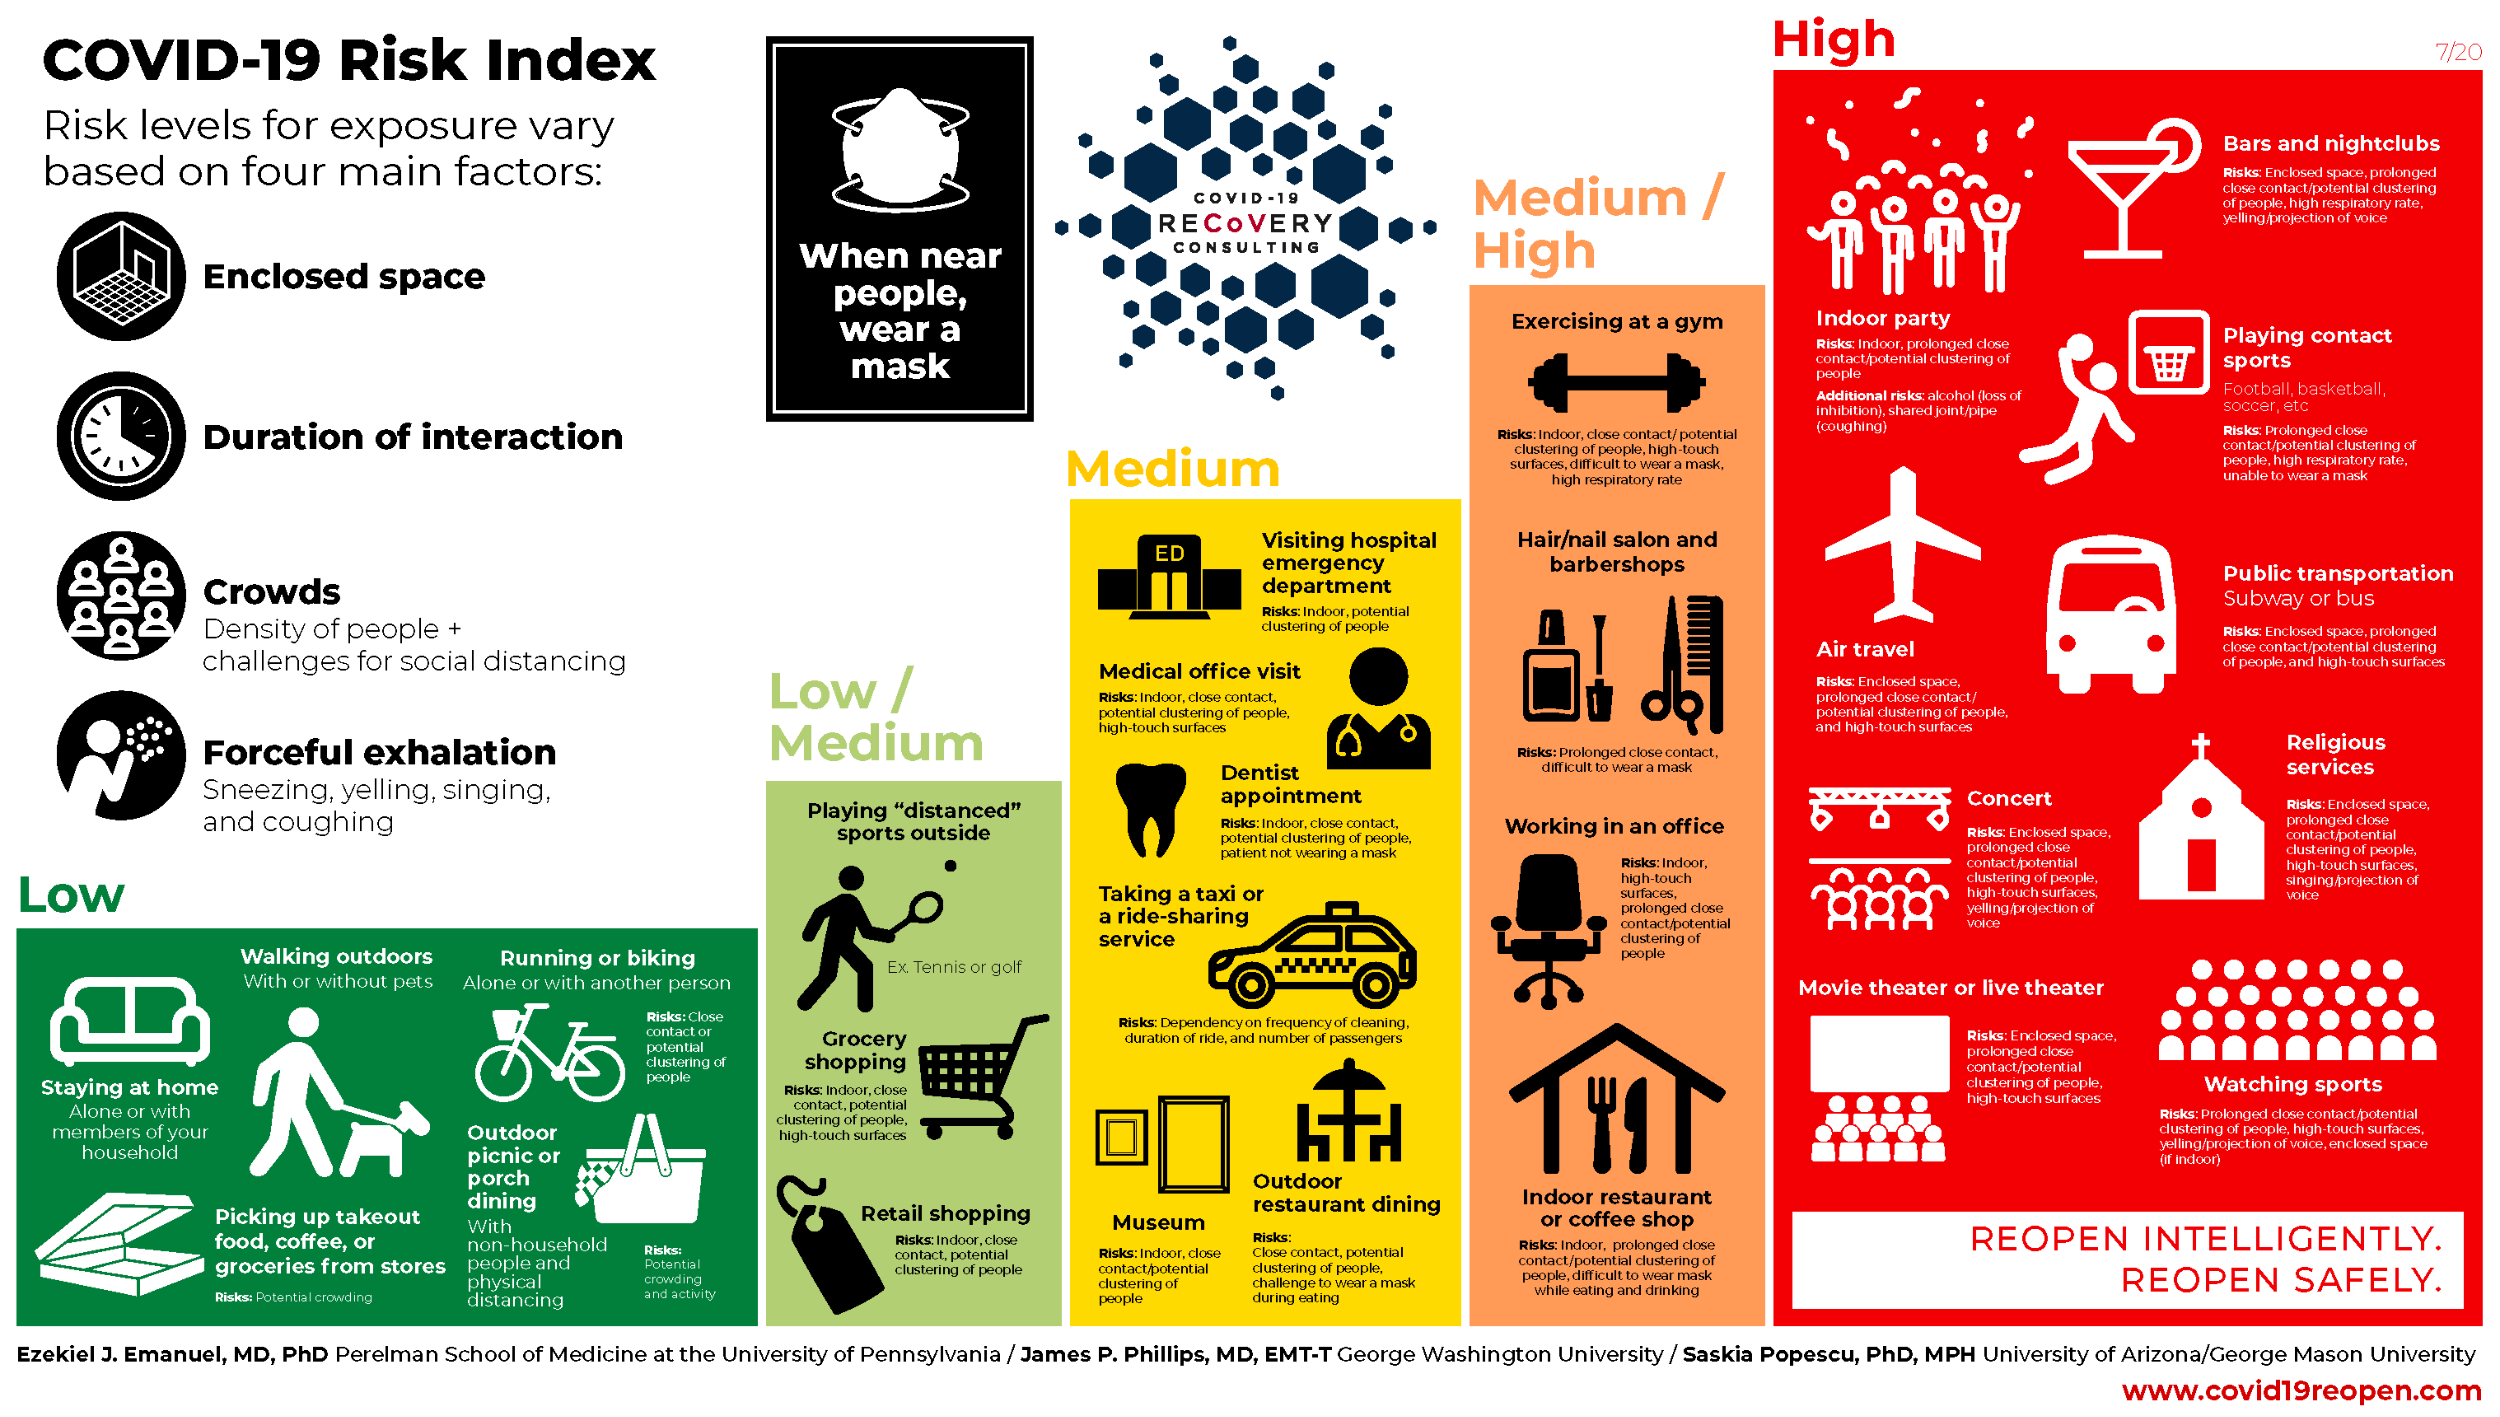 COVID-19 Risk Index Infographic w Authors 7.8.20.png